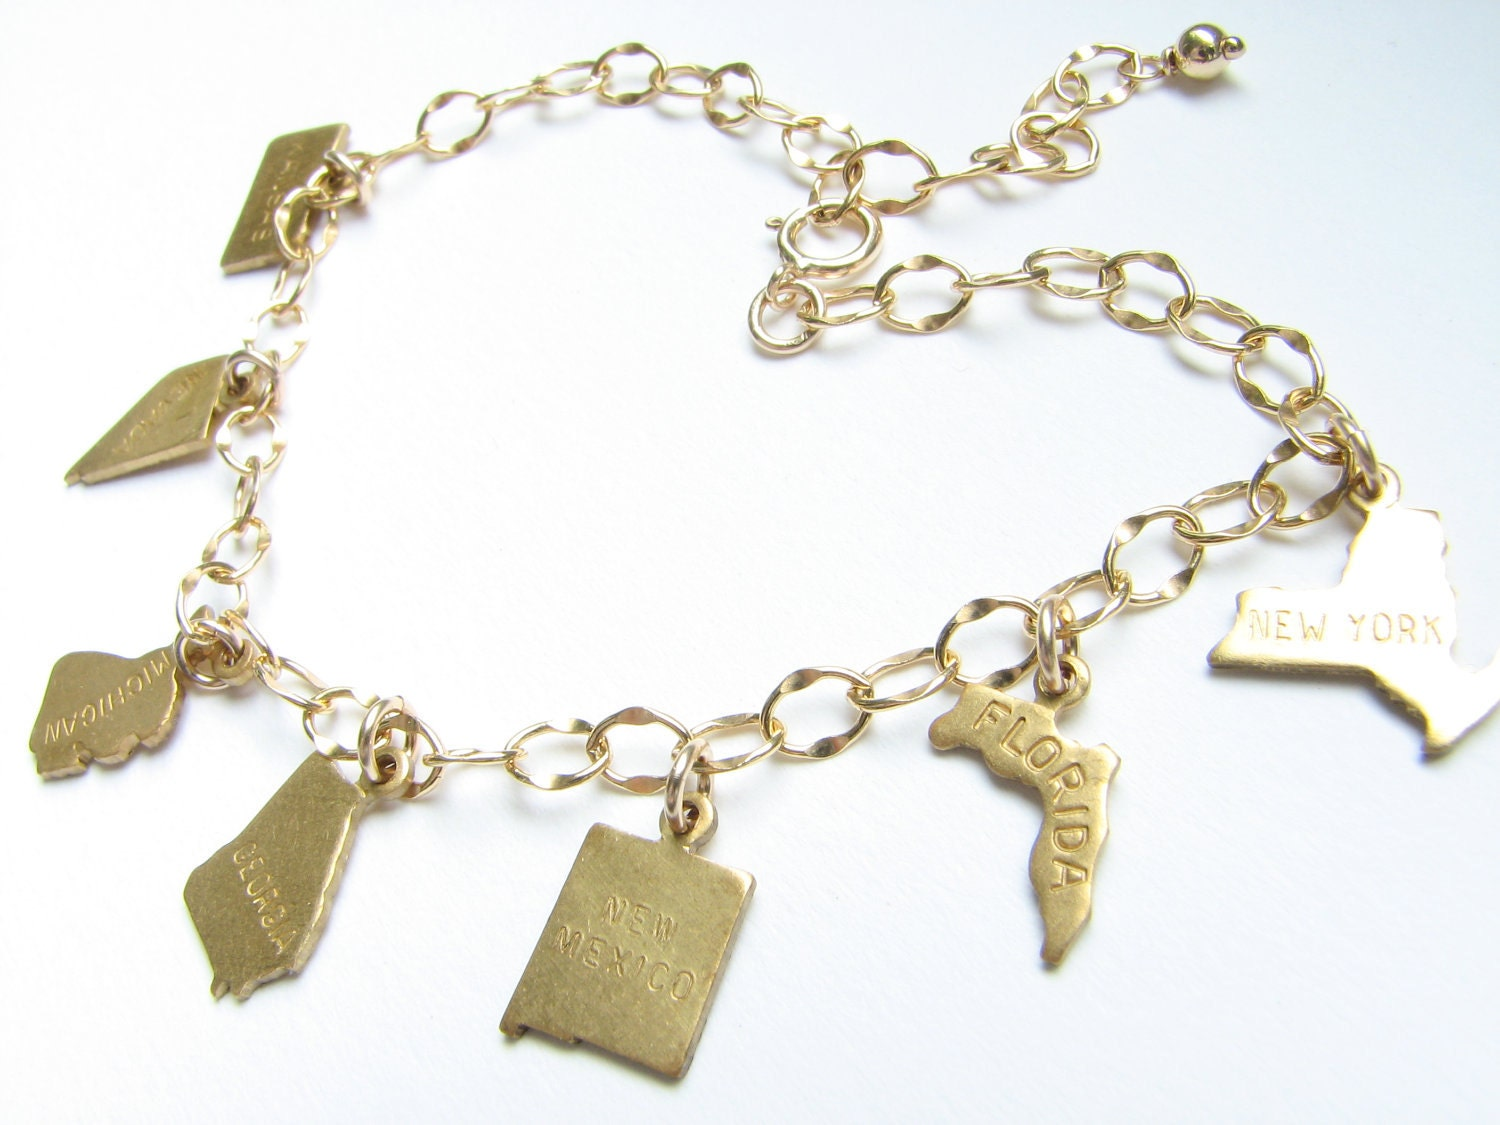 personalized state charm bracelet jewelry. Black Bedroom Furniture Sets. Home Design Ideas